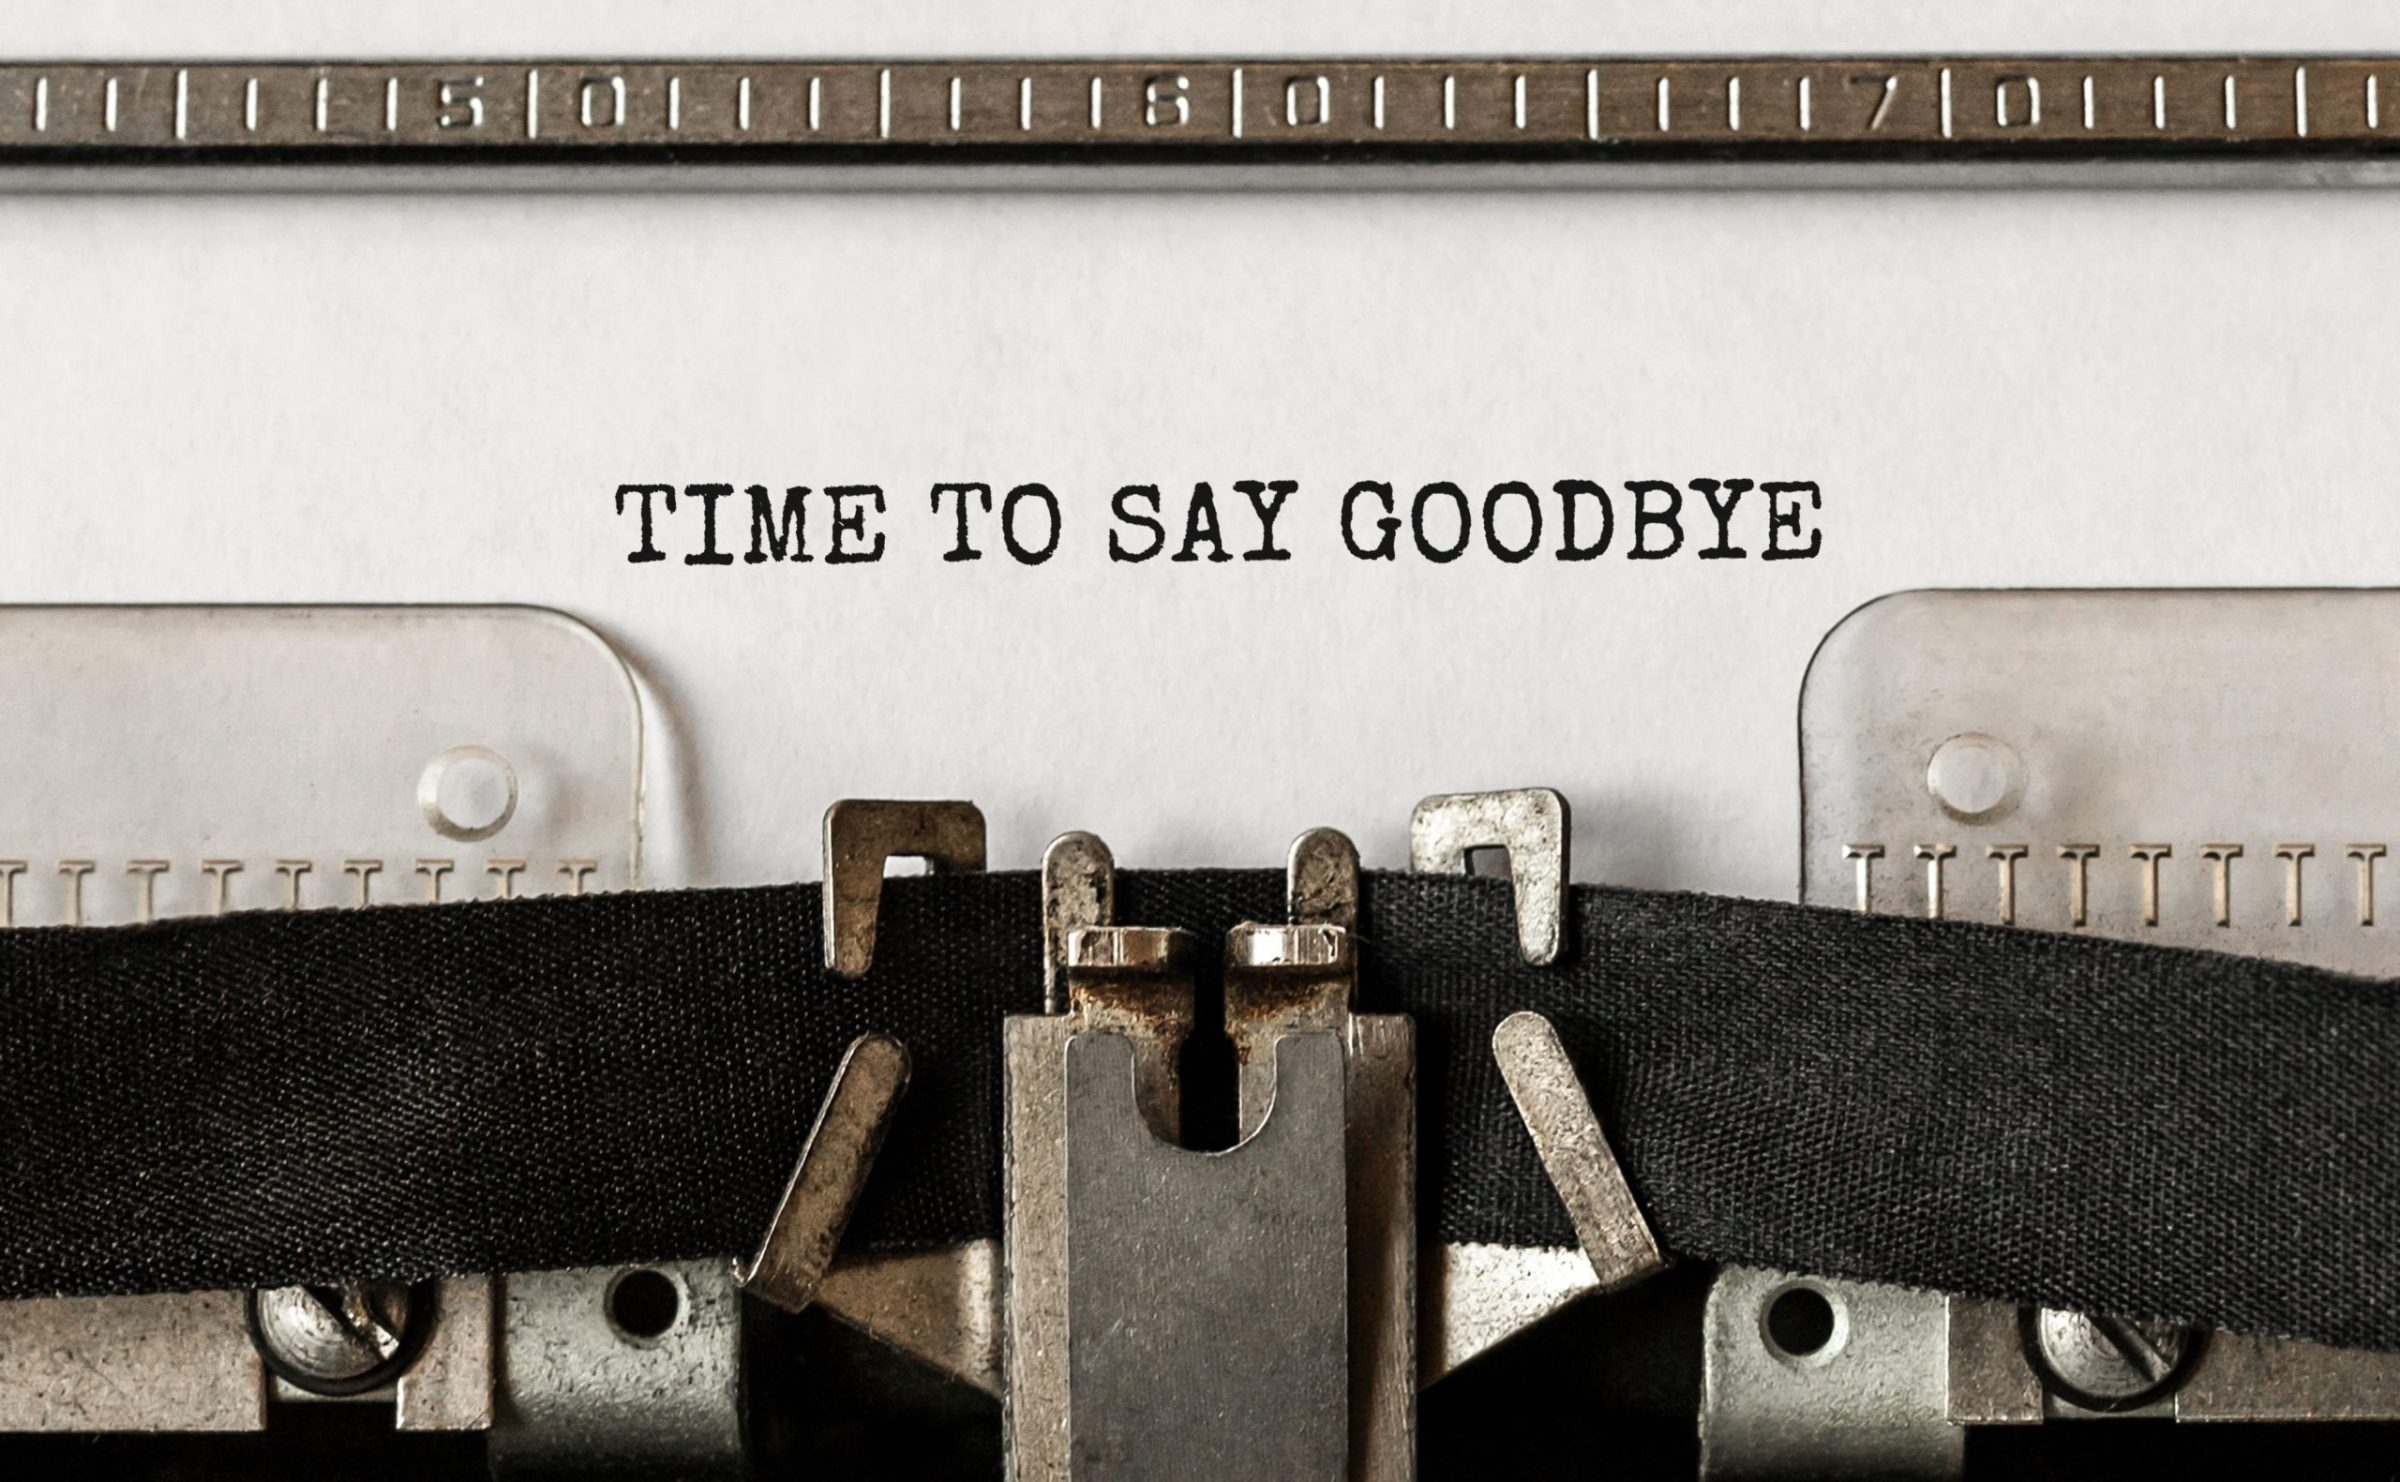 EMG blog - words we'd like to leave in 2020